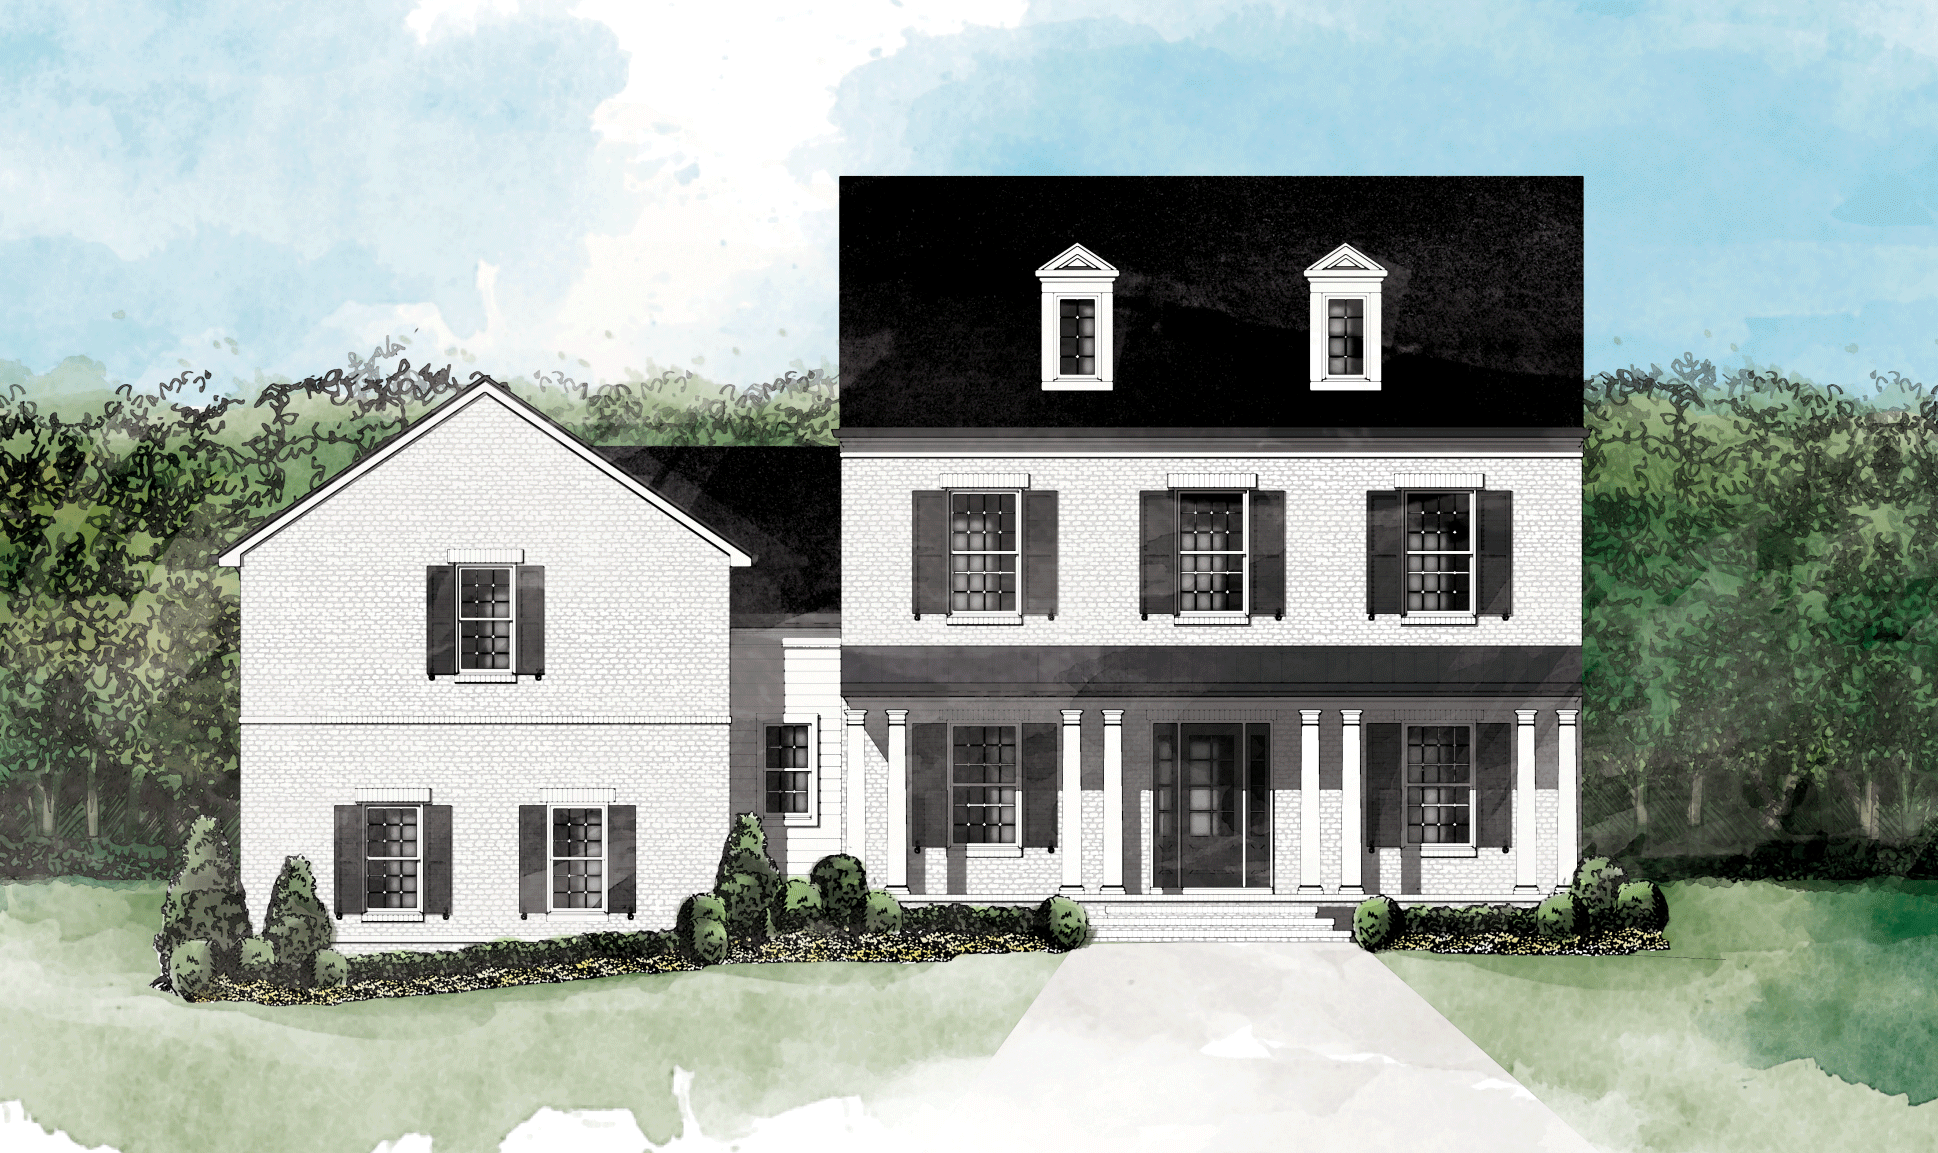 house for hope rendering